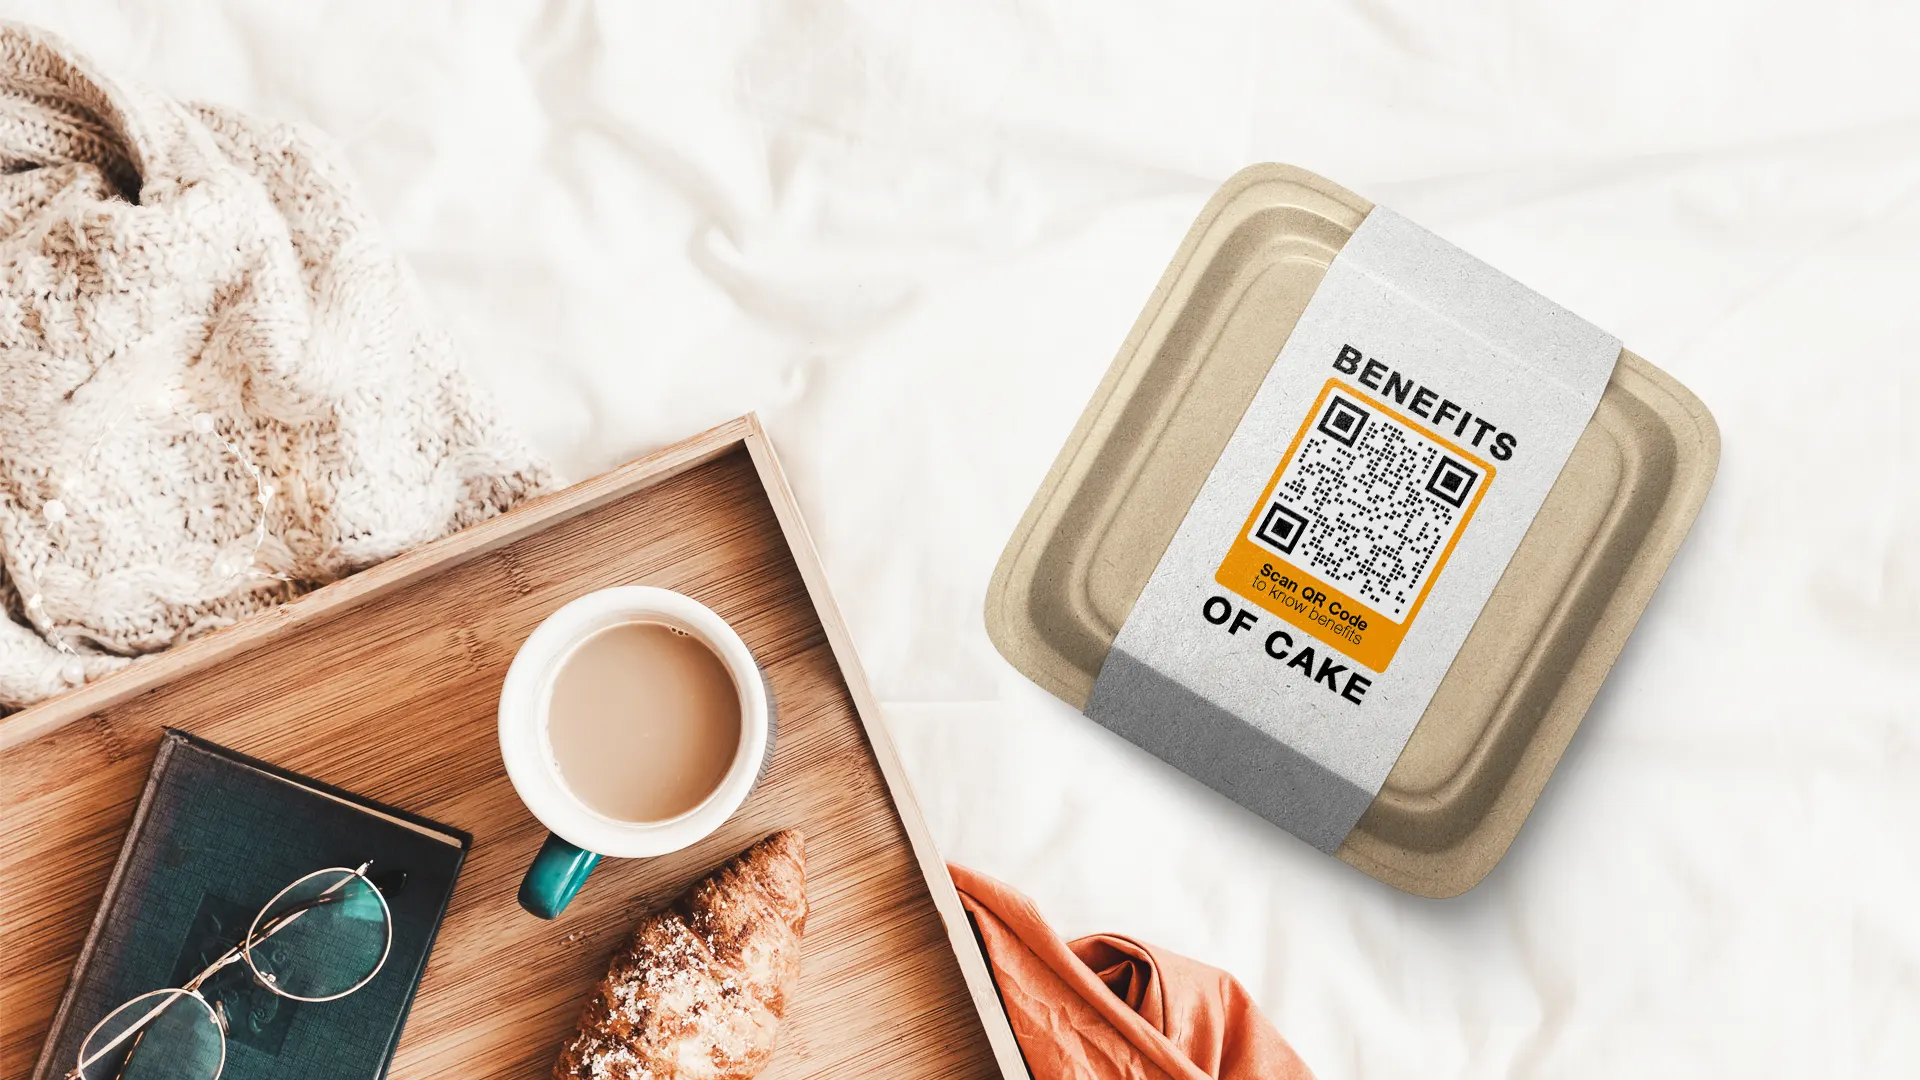 creative uses of qr codes food packaging